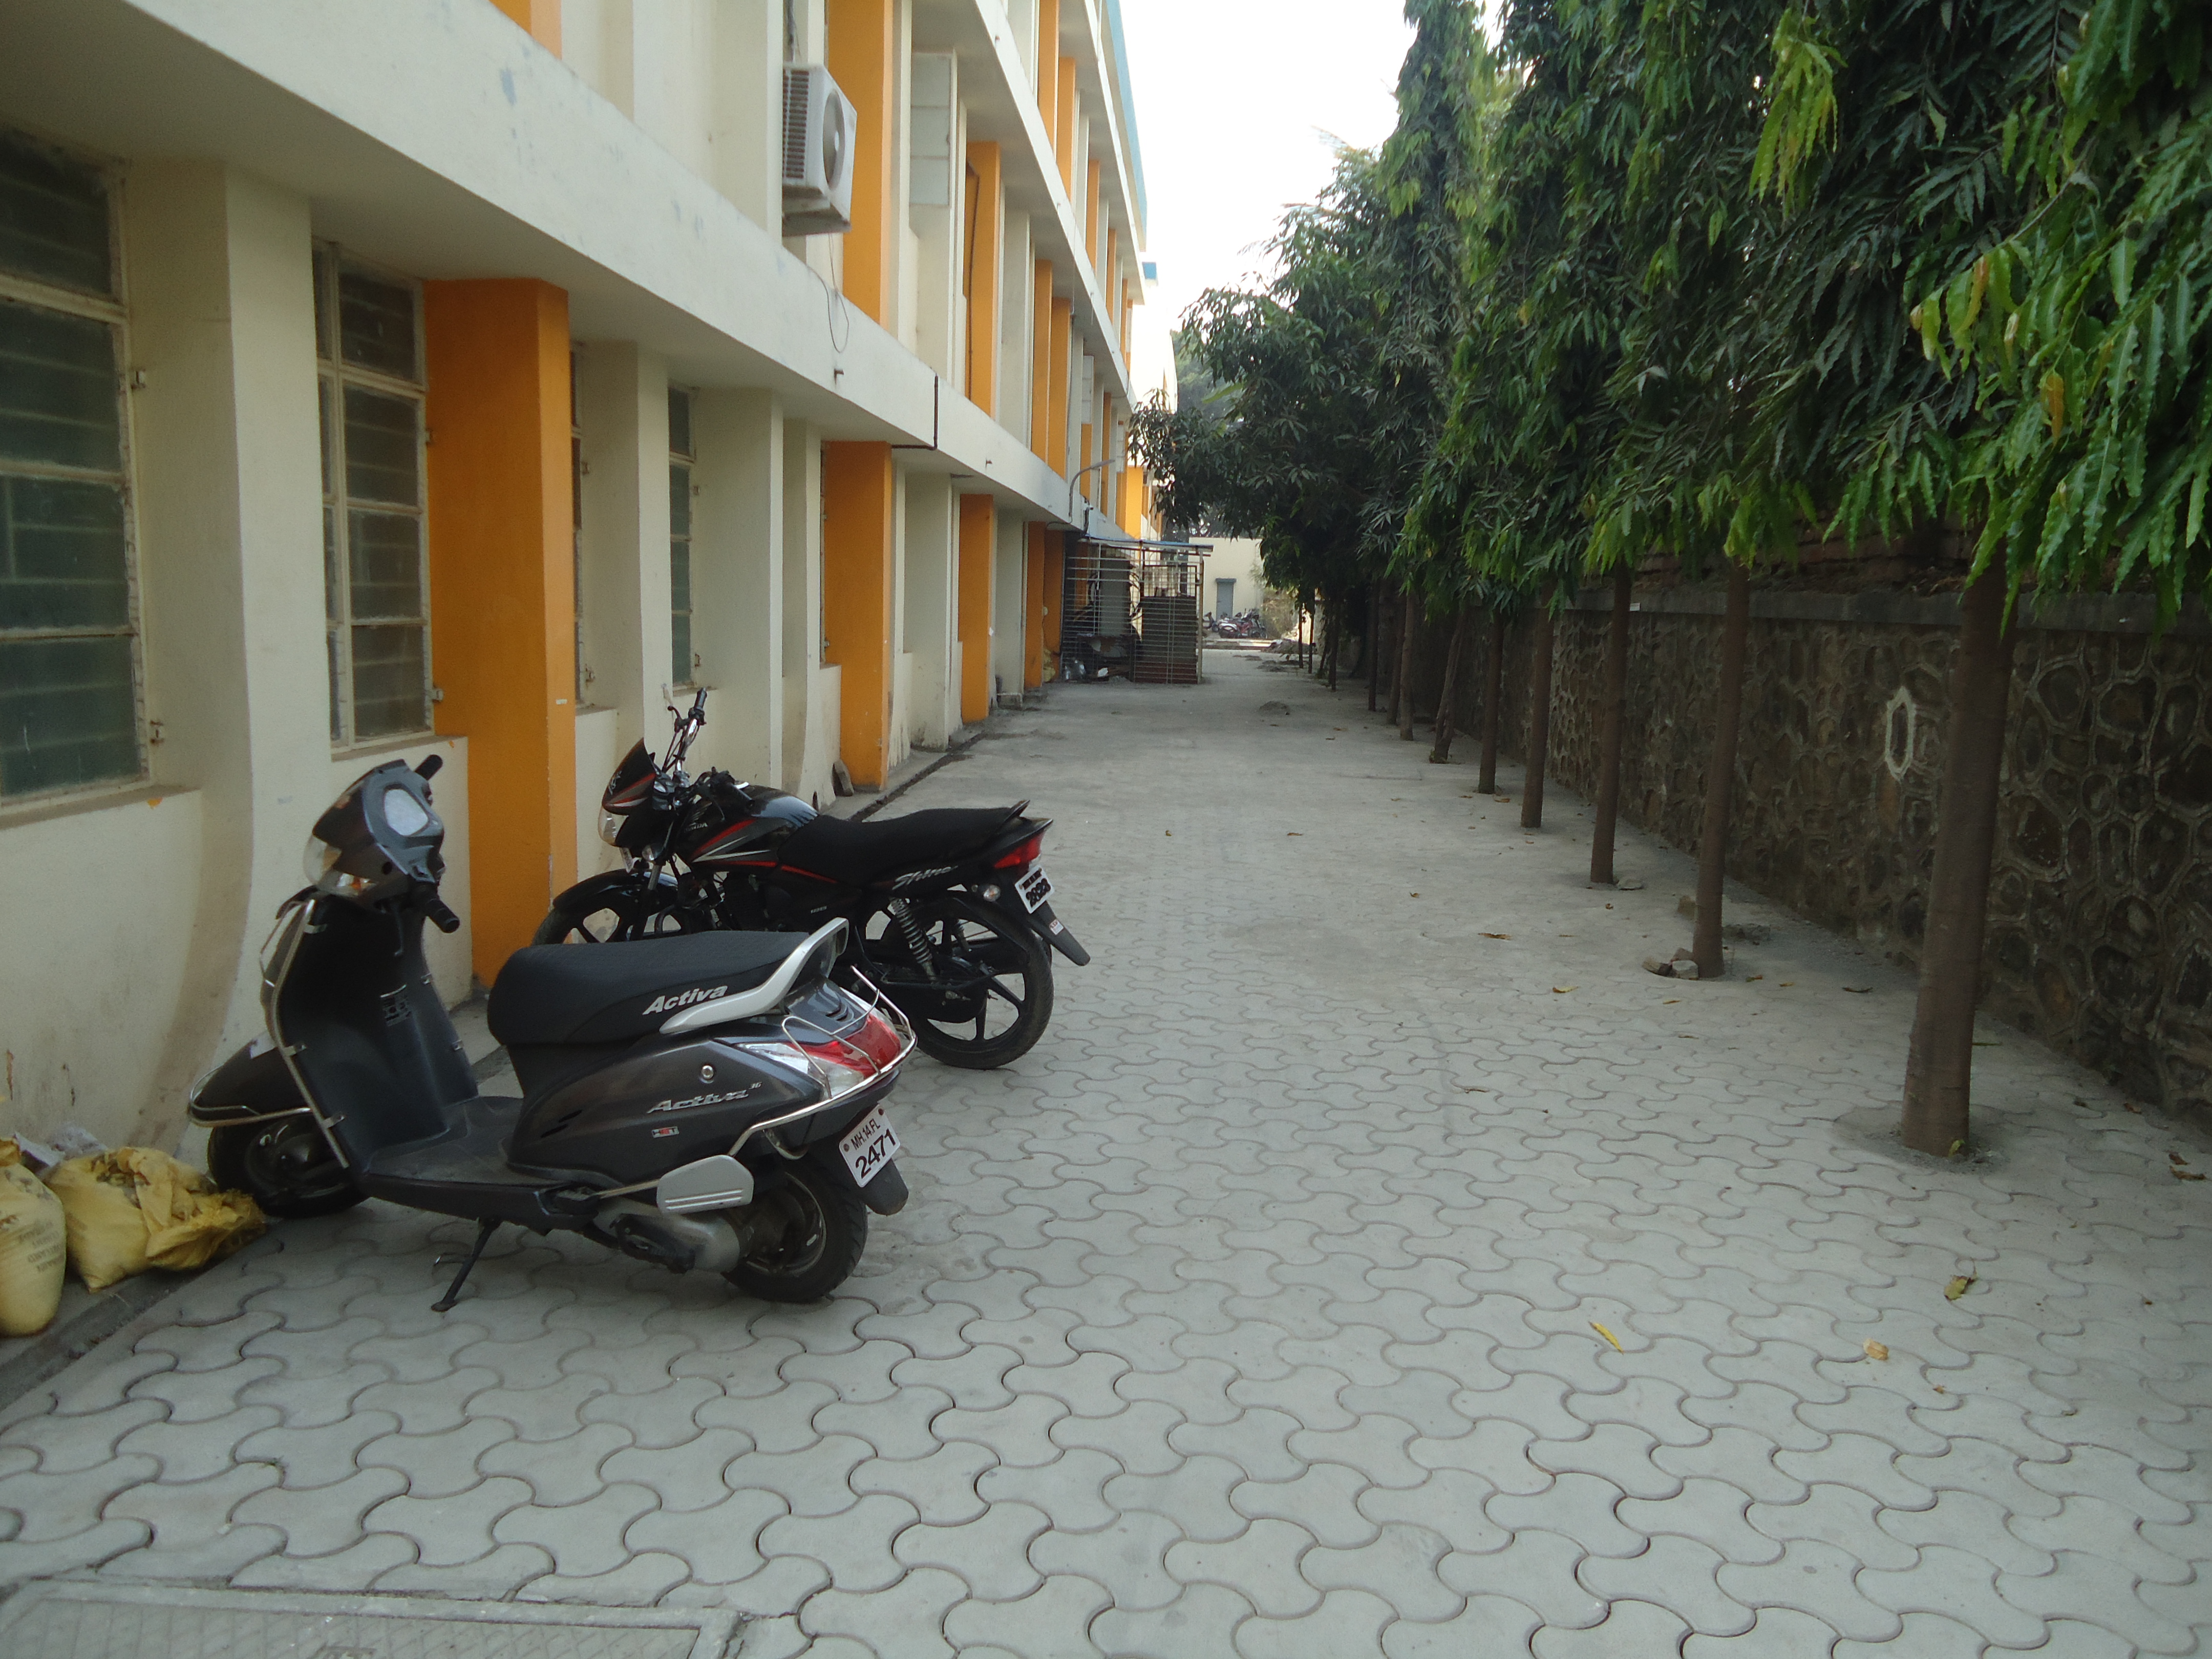 Parking at Pimpri Chinchwad Polytechnic college